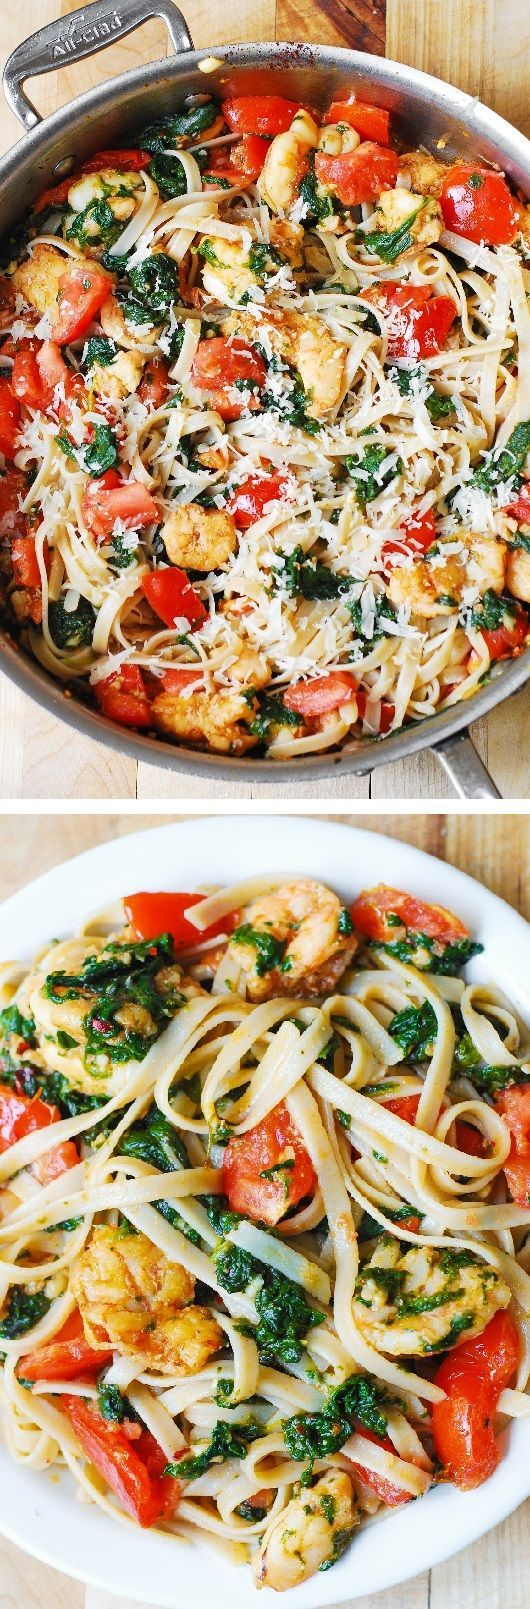 Shrimp tomato and spinach pasta in garlic butter sauce